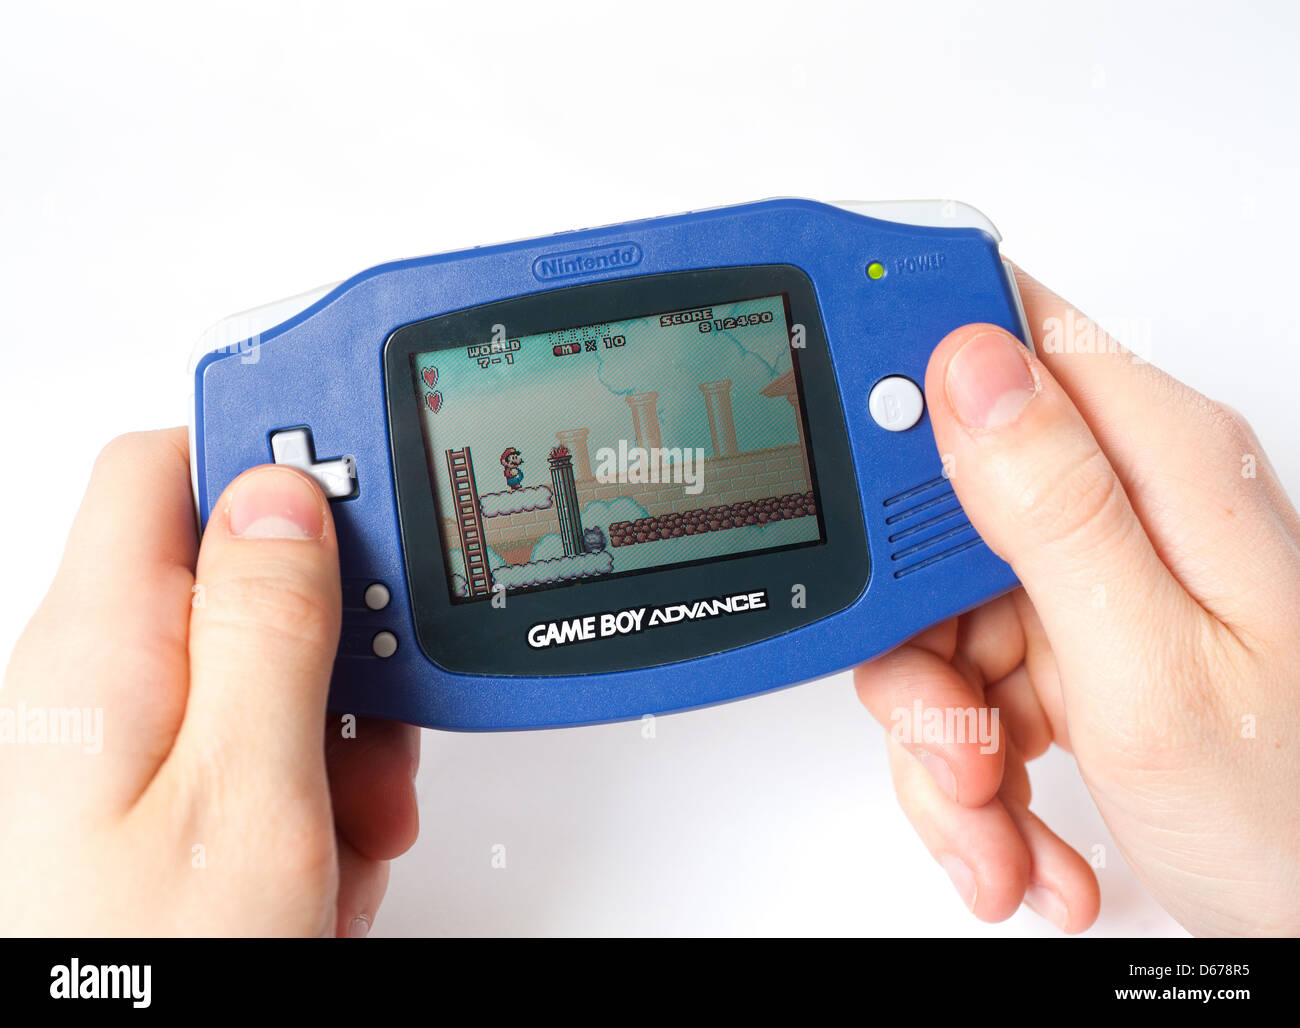 Super Mario Advance being played on the Nintendo Game Boy Advance - Stock Image